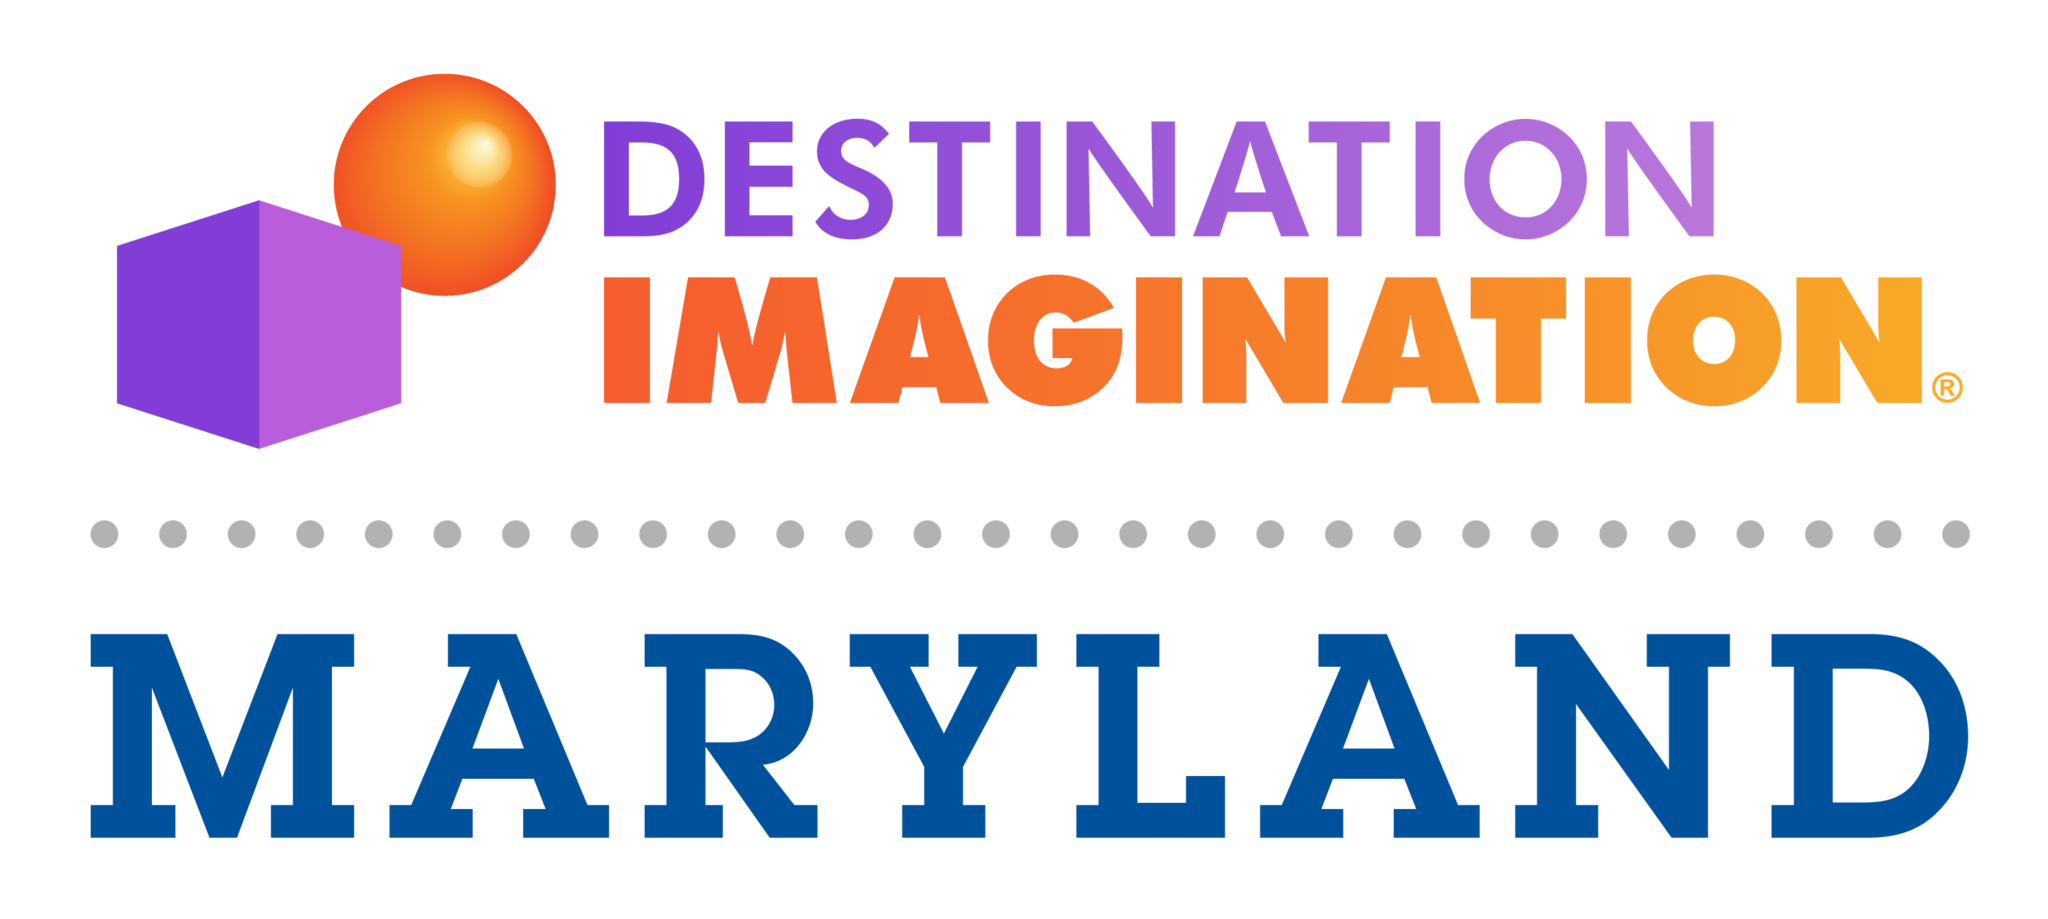 Congrats to the Maryland 2015 Globals teams! See you all in Knoxville.